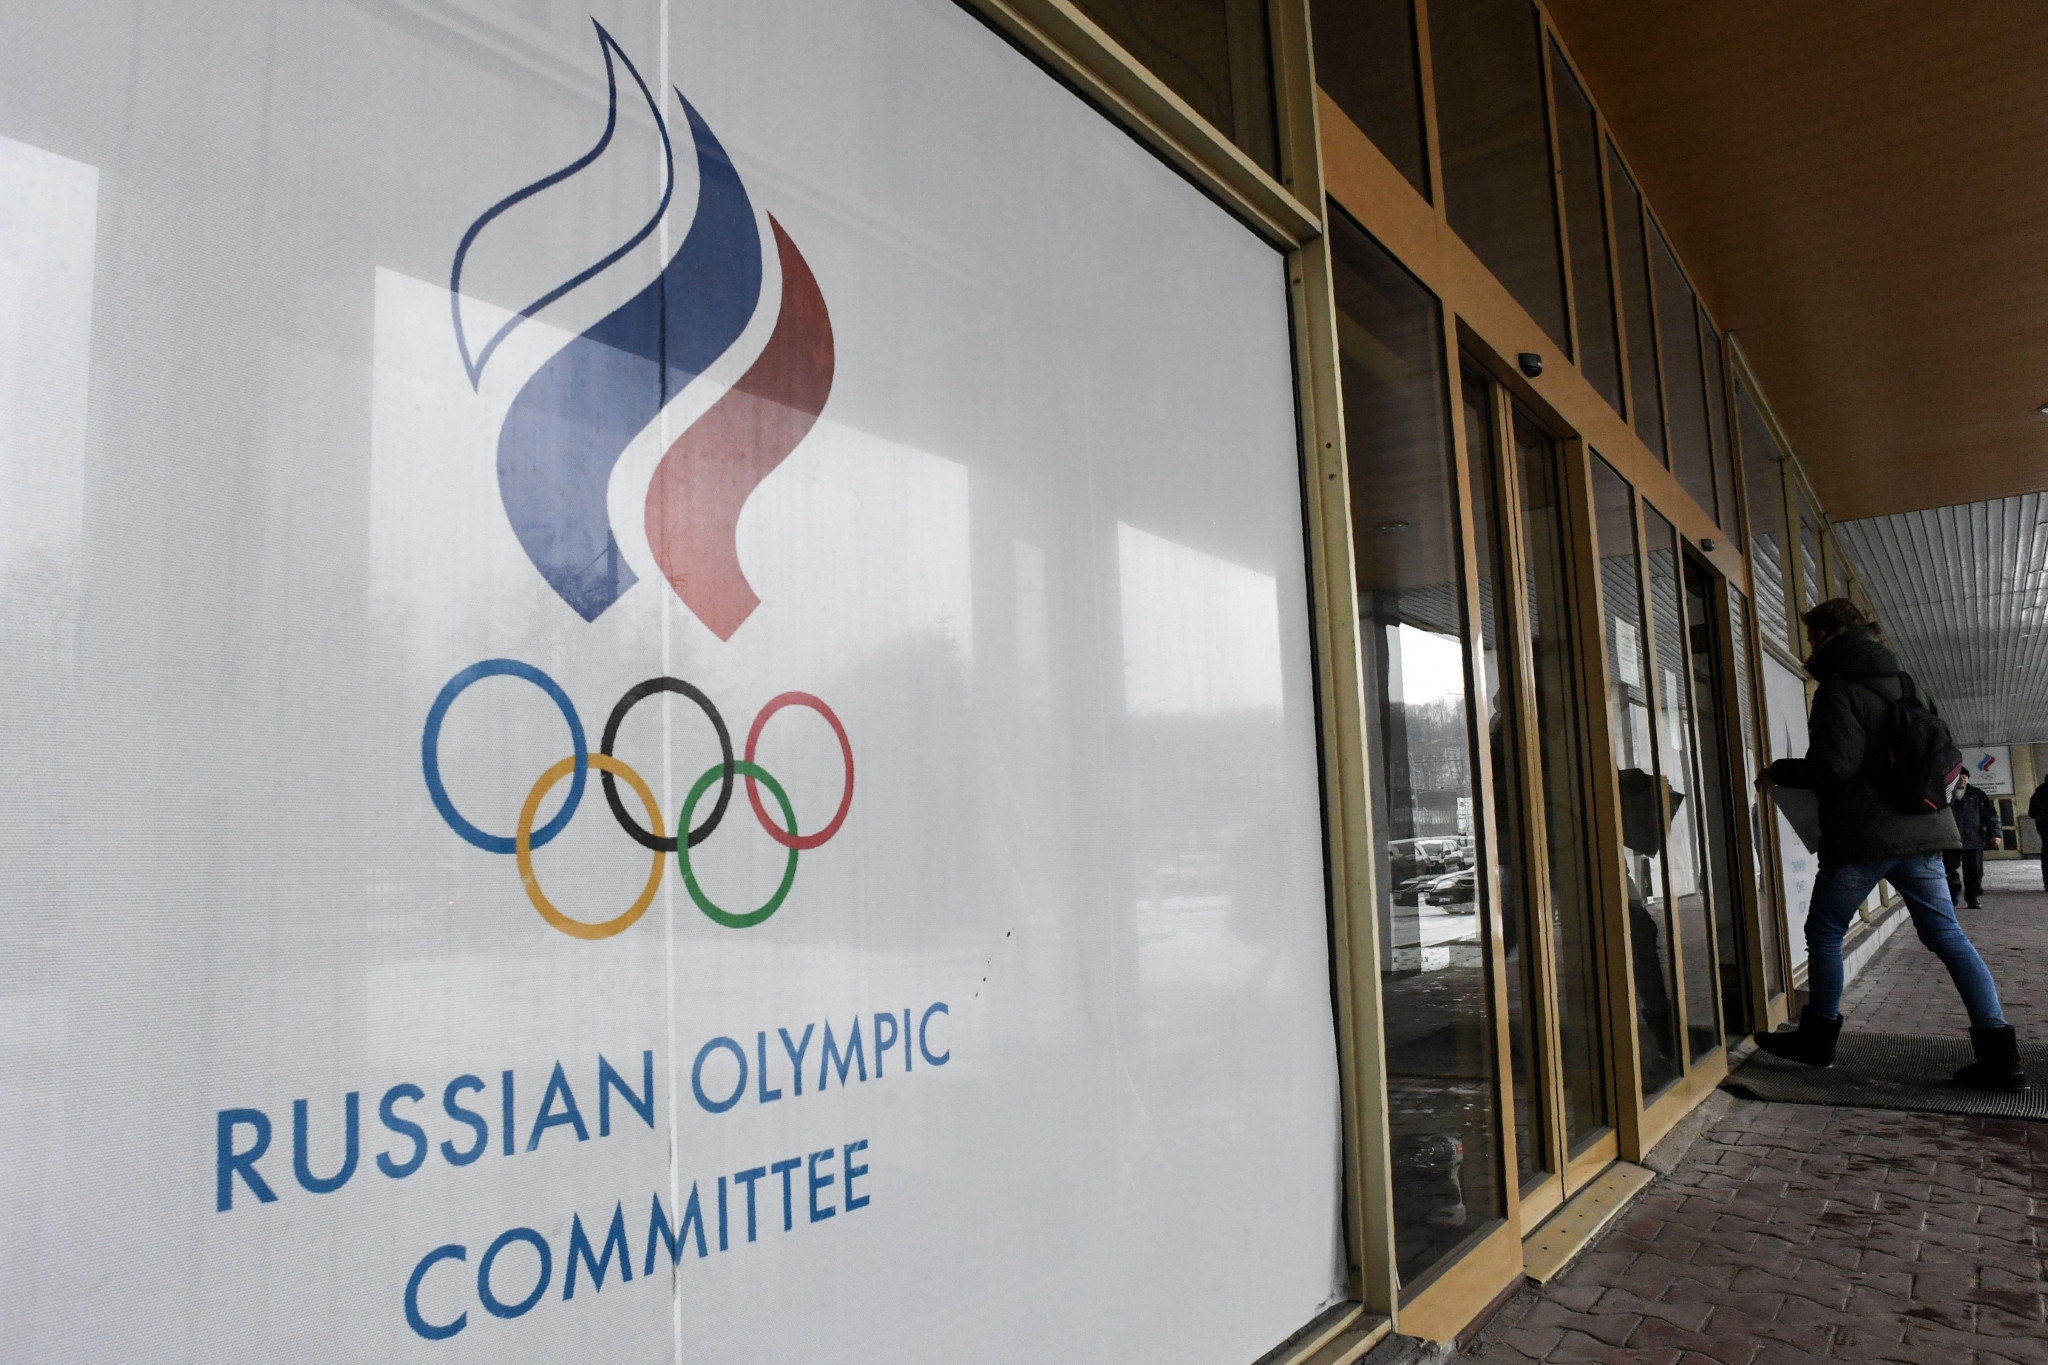 The Russian Olympic Committee still have to pay a $15 million fine imposed on them by the IOC ©Getty Images